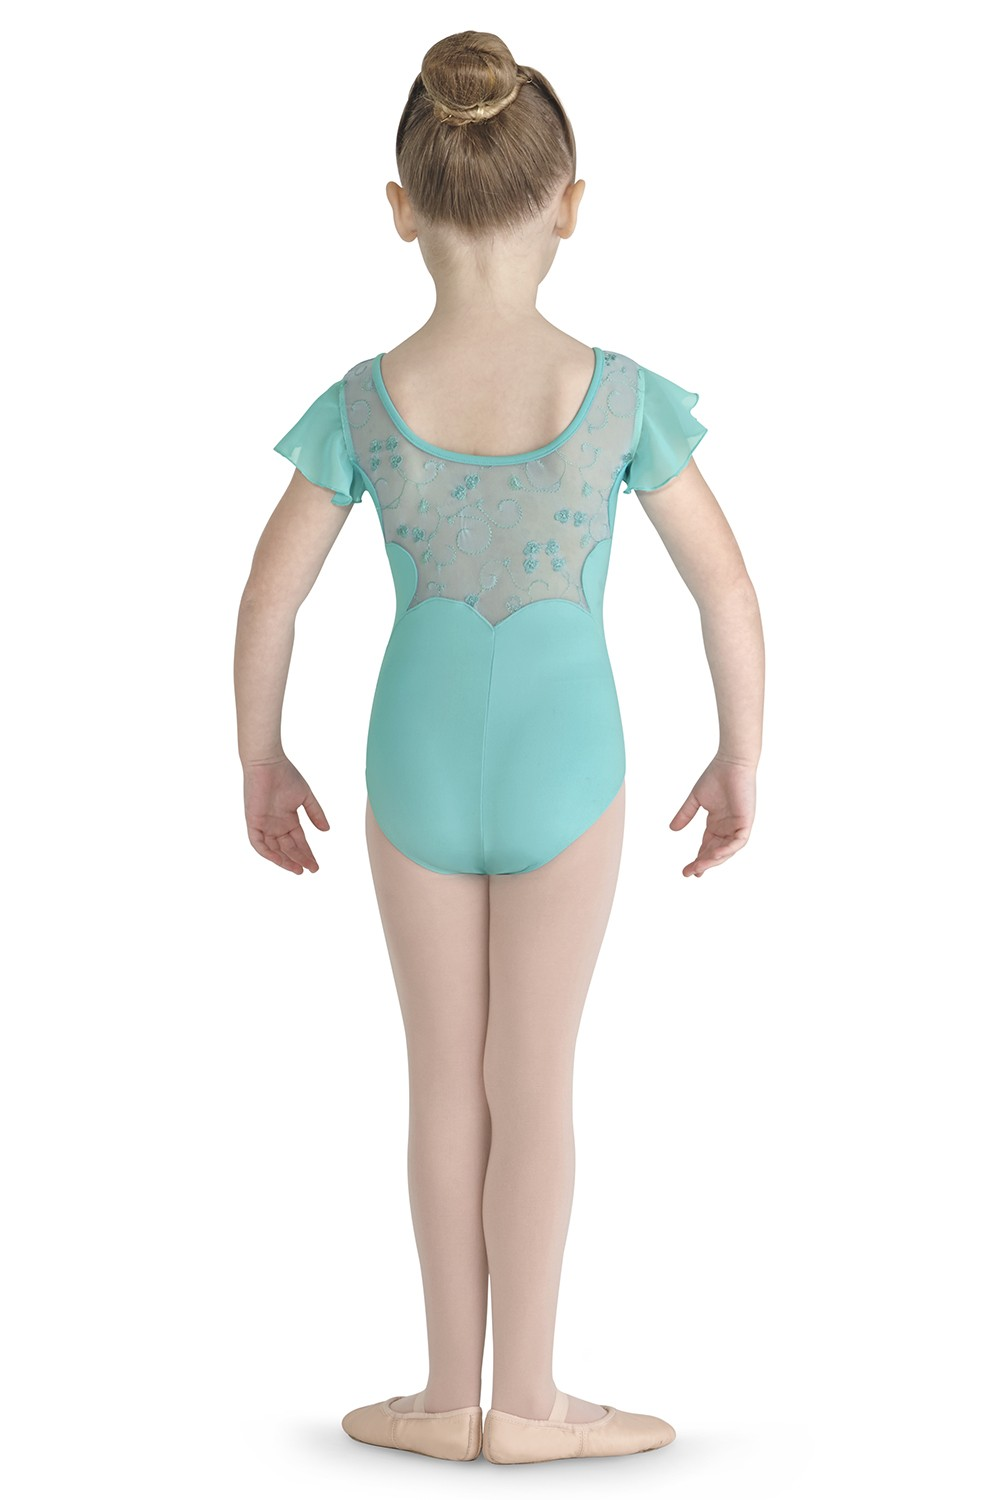 Couleta Children's Dance Leotards